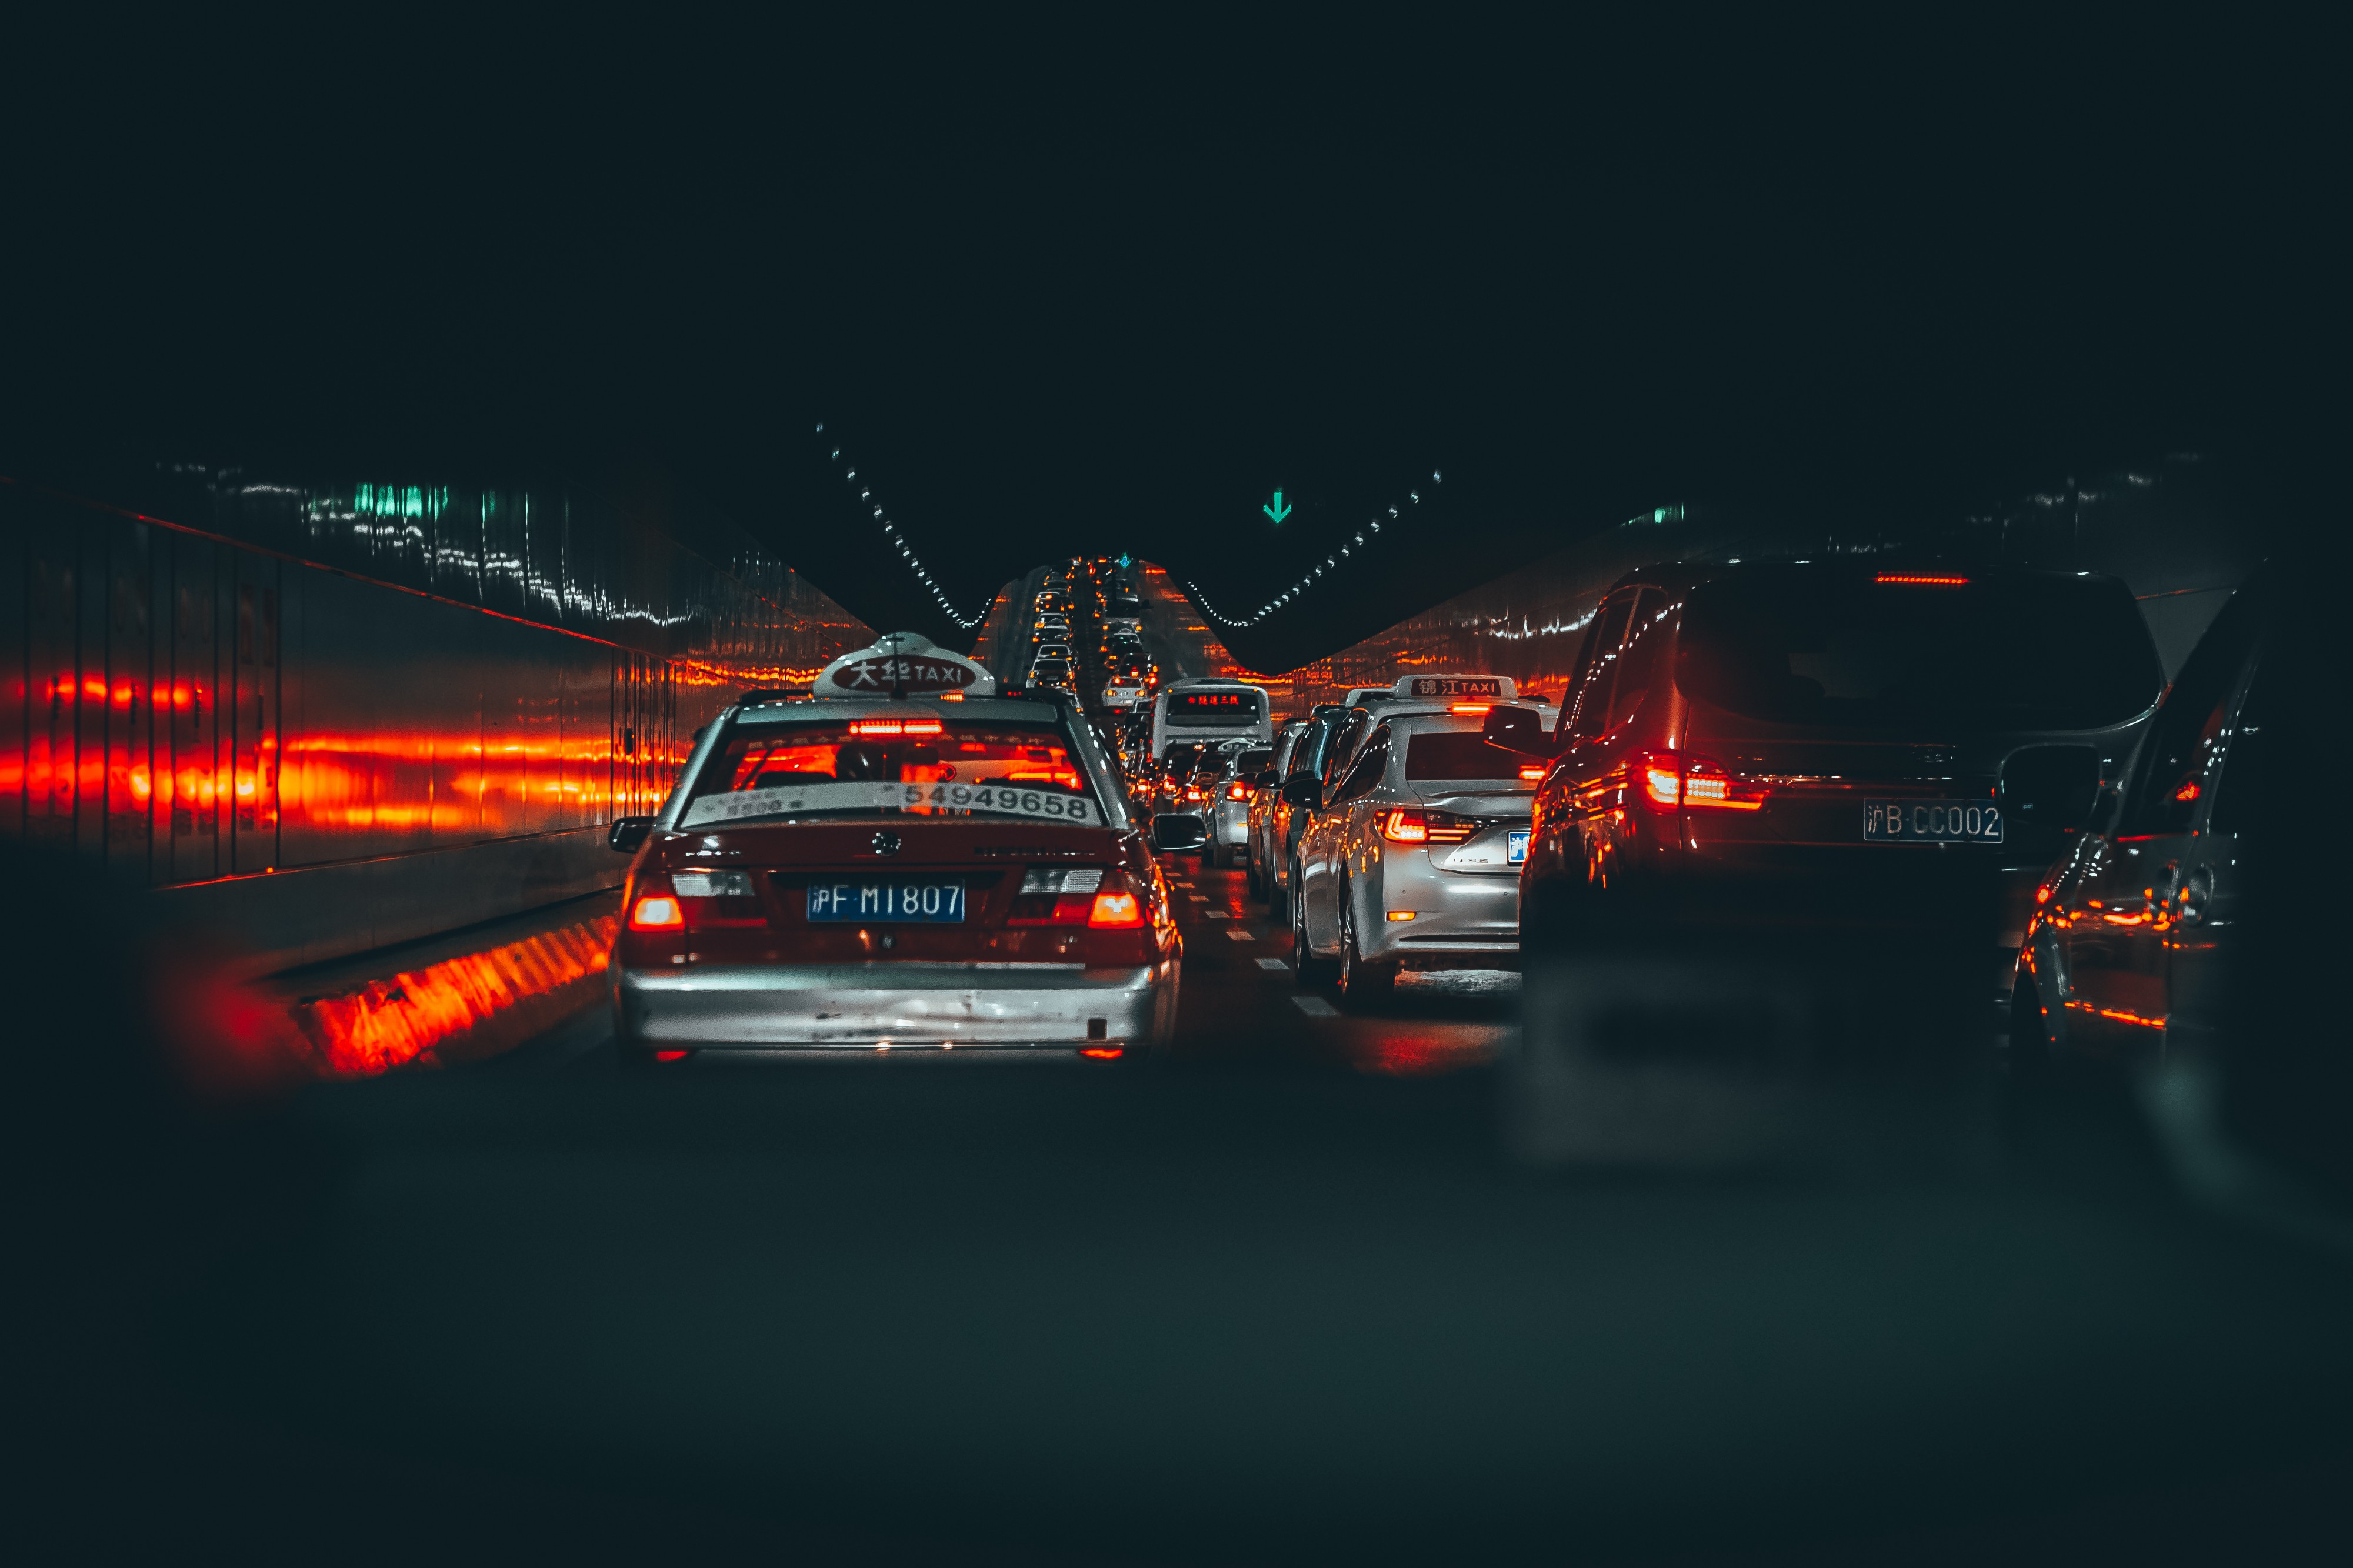 Cars ligned up in a dark tunnel